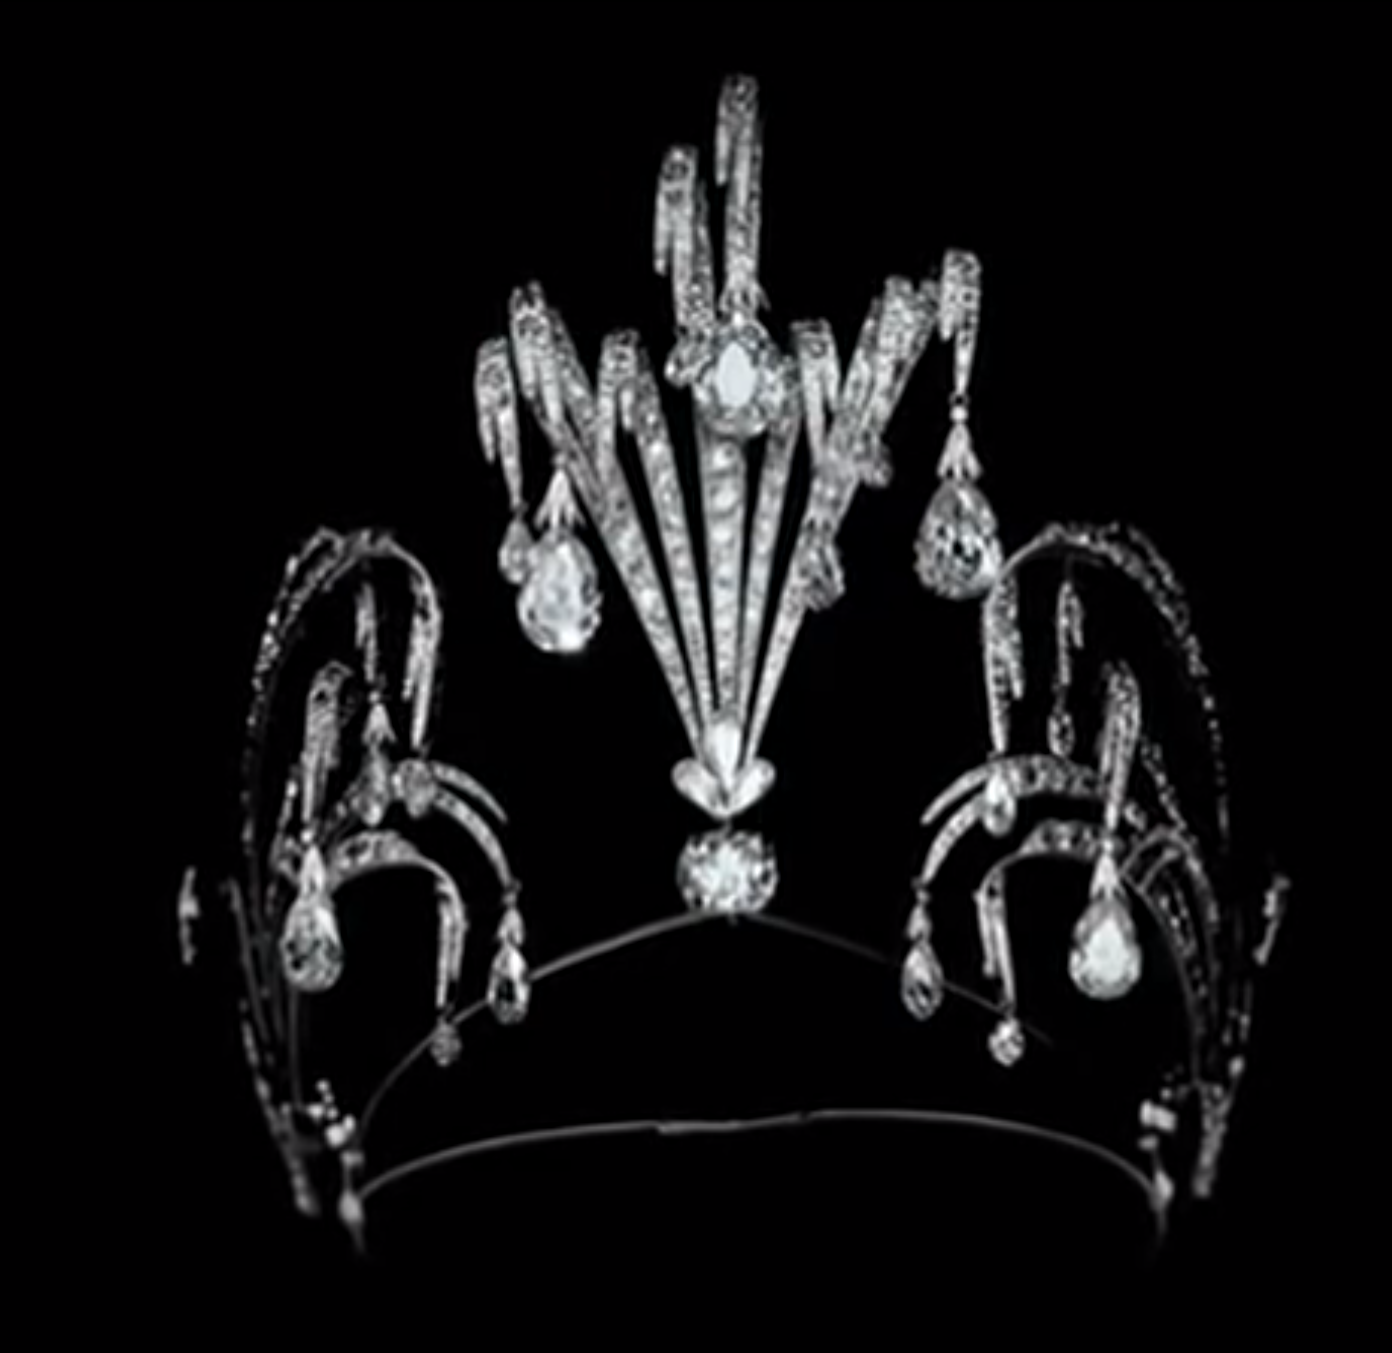 Marie Poutine S Jewels Amp Royals Russian Imperial Jewels